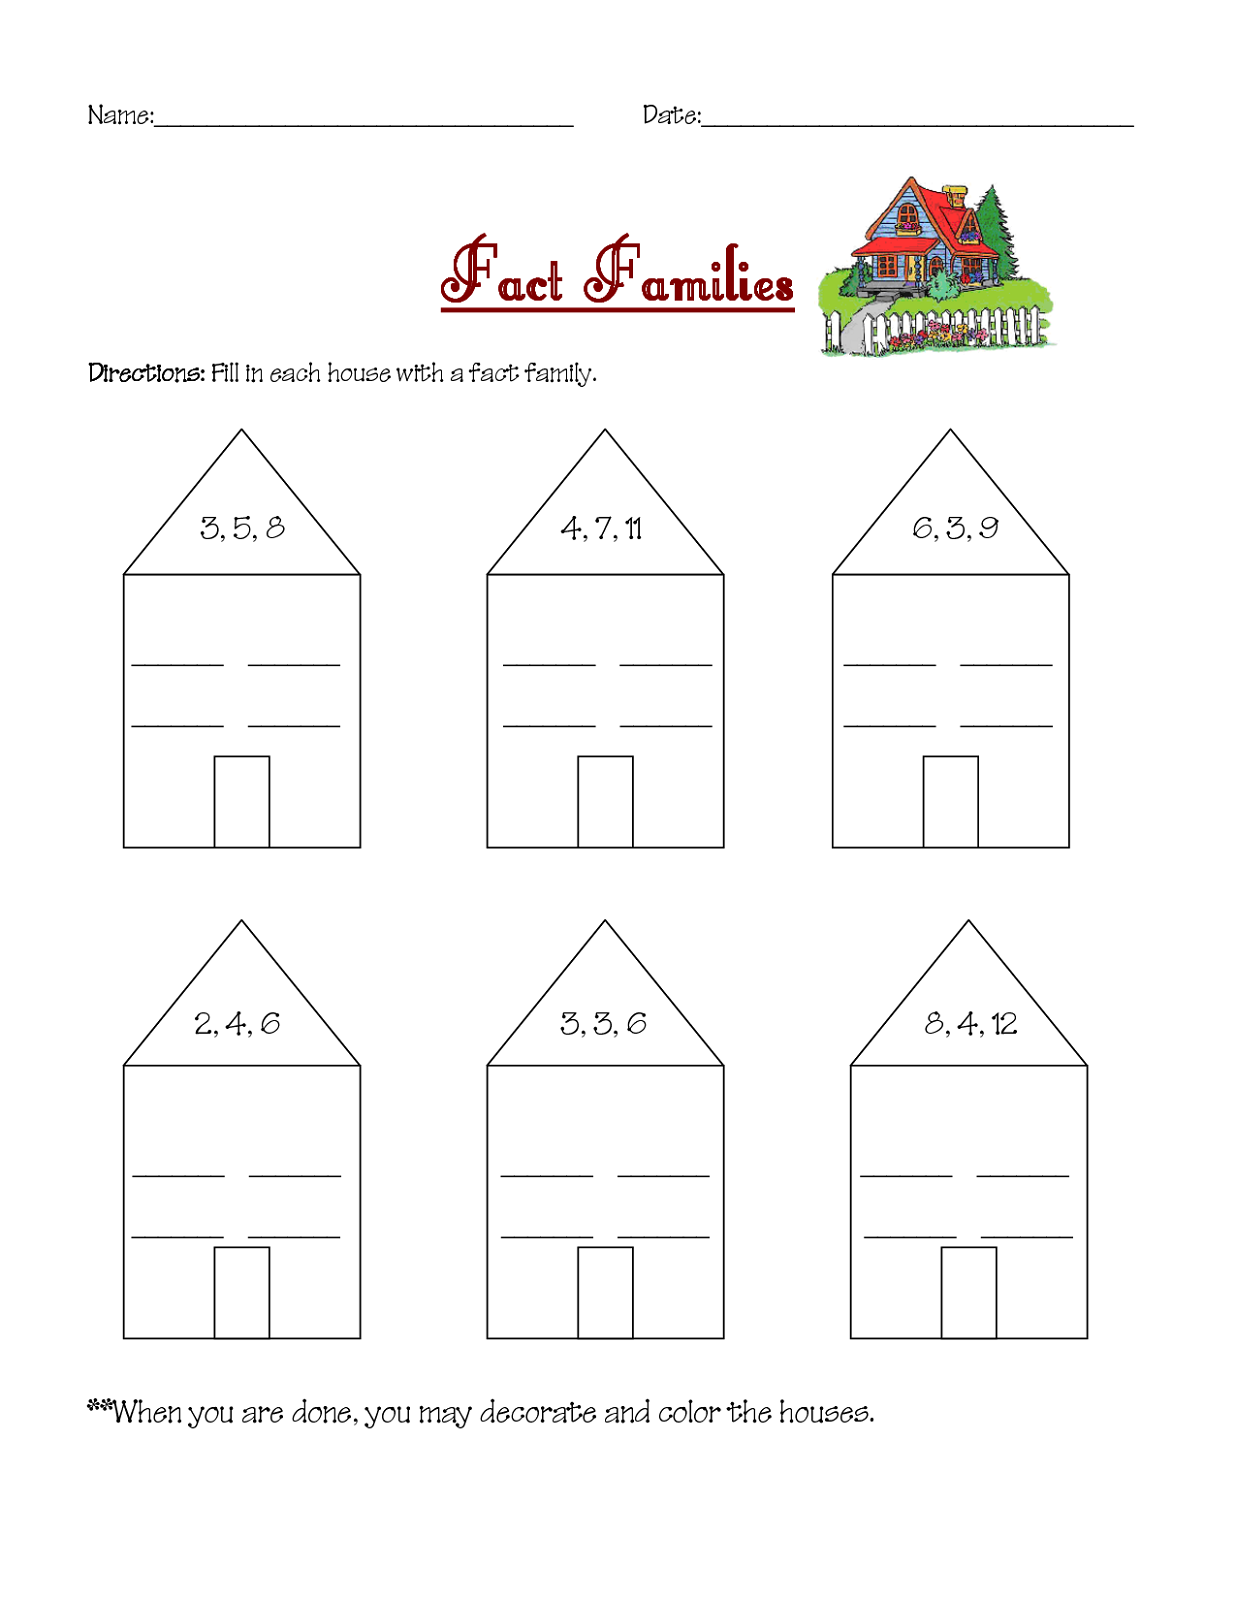 Worksheet Math Fact Families Worksheets math worksheets fact families activity shelter exercise